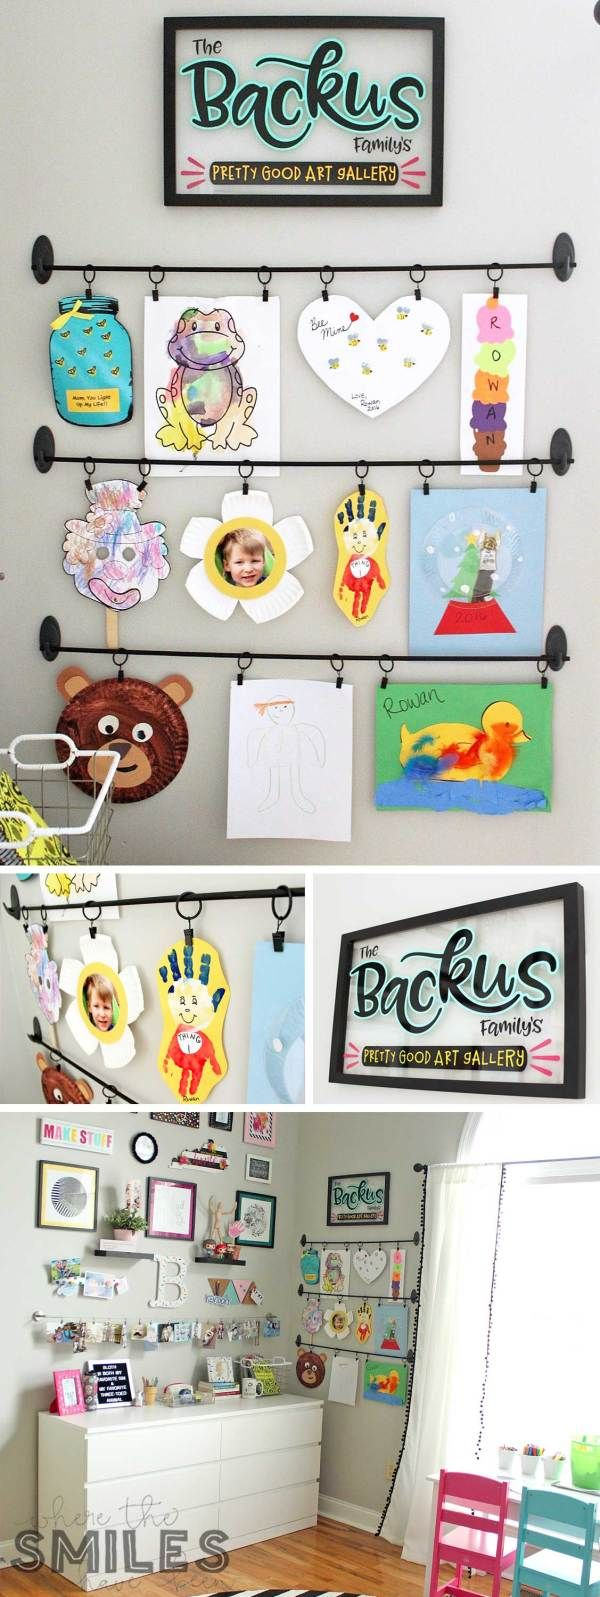 Easy DIY Kids Art Display: Simple, Inexpensive, & No Damage! images